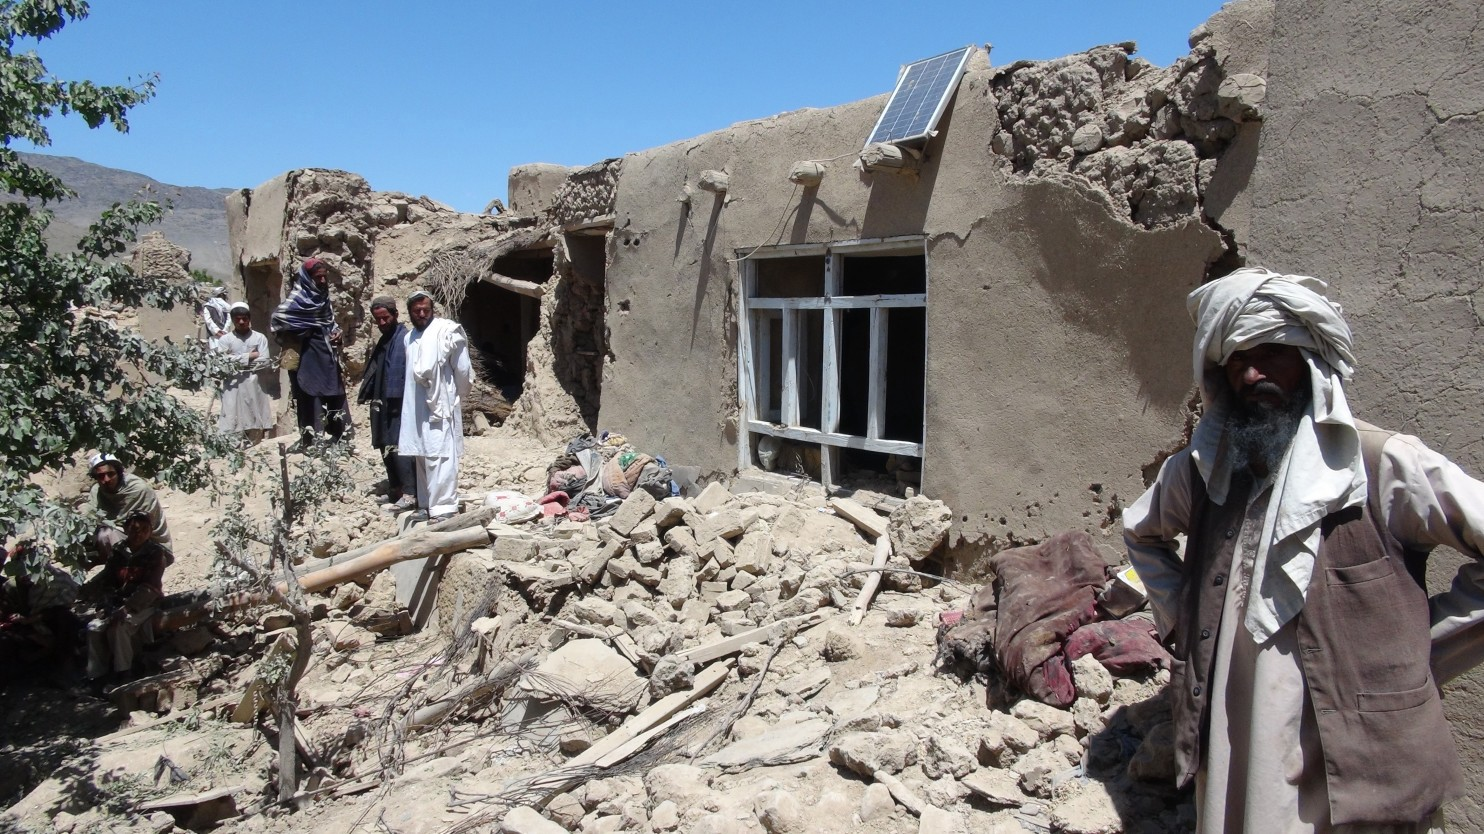 """Afghan villagers gather near a house destroyed in a NATO raid in Logar province, south of Kabul, Afghanistan on June, 6, 2012. The airstrike was called in by U.S. troops after they came under fire while pursuing a Taliban fighter in a village in the Baraki Barak district. (Ihsanullah Majroh/AP) Like many insurgencies in the past, the Taliban utilize the well-worn tactic of shielding themselves amongst innocent civilians. In modern times, this has led to unfortunate loss of civilian life because of the moral hazard that occurs when friendly land forces are compelled in self defense to respond to enemy fire with firepower of their own. It is in this fashion where land power, and its associated usage of firepower in response to """"troops in contact"""" event hardly result in discriminate application of force, or a """"precise rheostat,"""" and thus it is just as capable of creating negative impacts upon strategic effect as the usage of other forms of military power. A Humans Right Watch report titled, """" Troops in Contact ,"""" states the following: """"High civilian loss of life during airstrikes has almost always occurred during the fluid, rapid-response strikes, often carried out in support of ground troops after they came under insurgent attack. Such unplanned strikes included situations where US special forces units—normally small numbers of lightly armed personnel—came under insurgent attack; in US/NATO attacks in pursuit of insurgent forces that had retreated to populated villages; and in air attacks where US 'anticipatory self-defense' rules of engagement applied."""""""